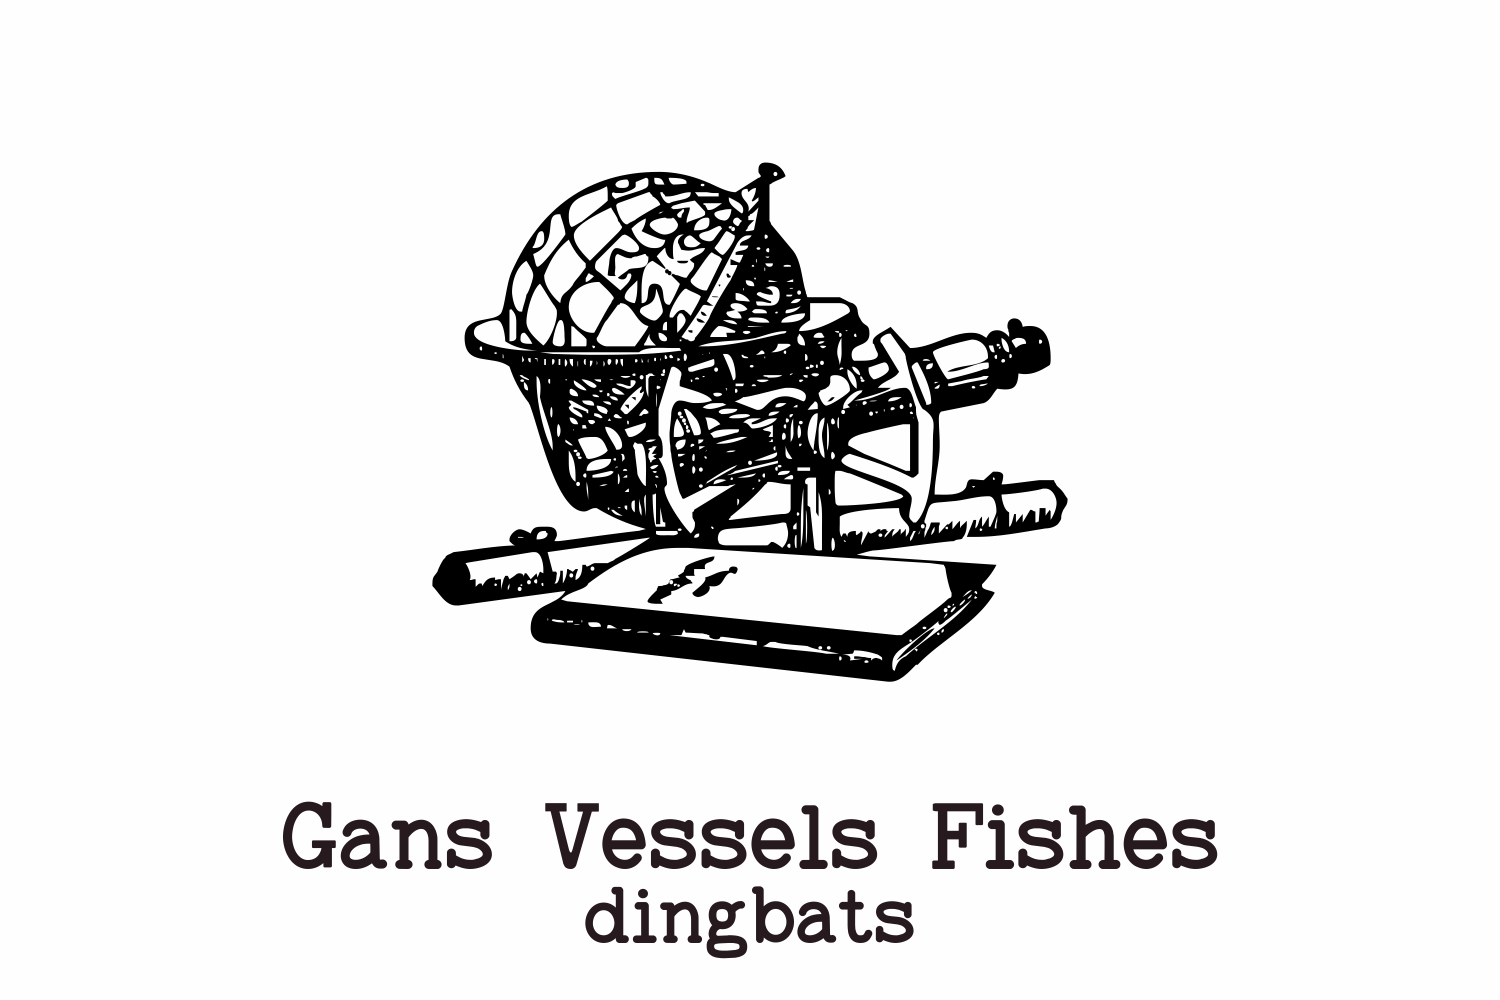 Gans Vessels Fishes example image 4